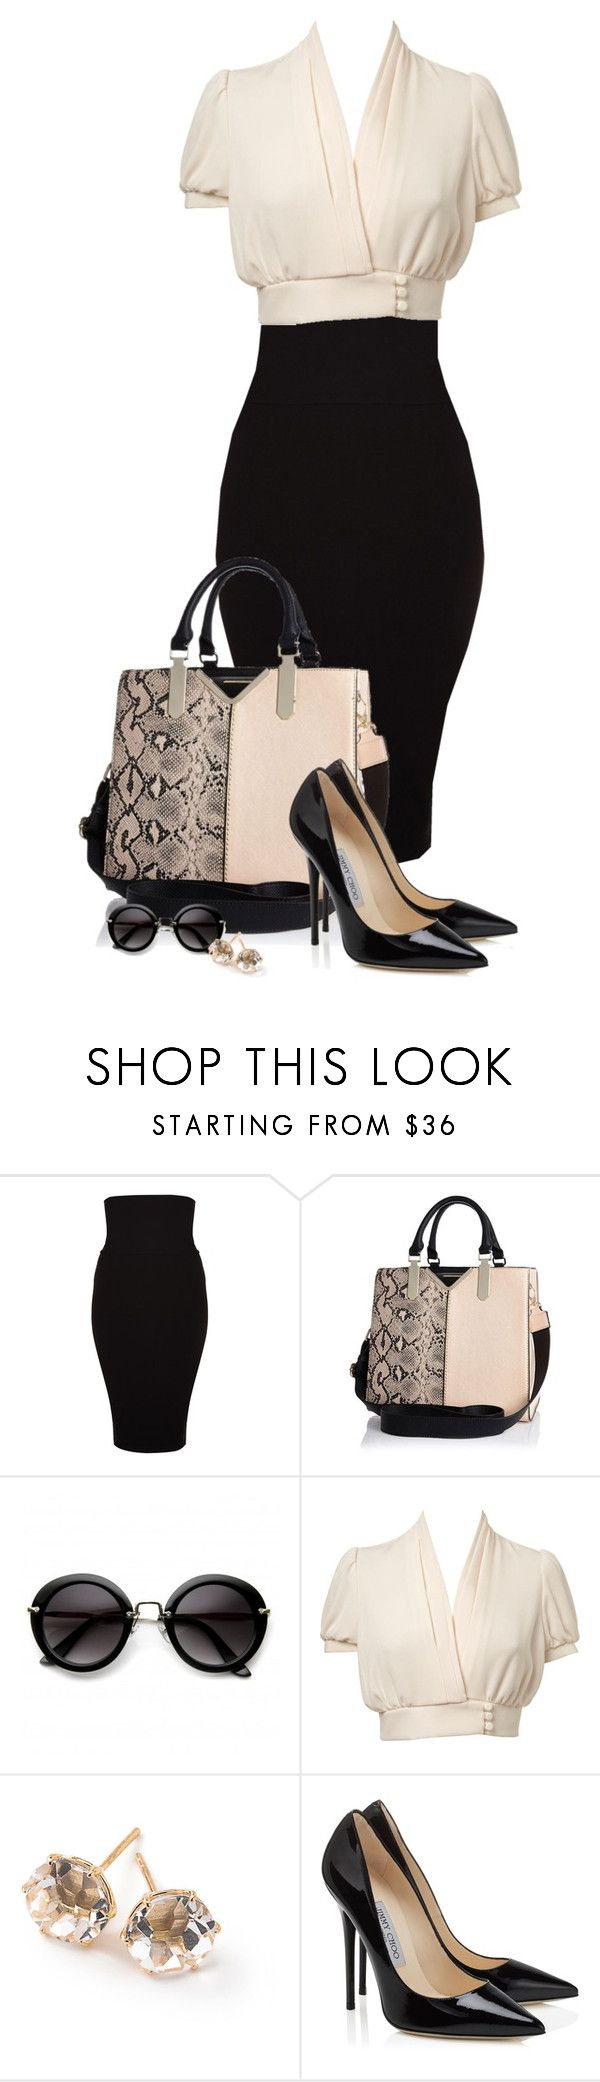 """Simple"" by missus-sara ❤ liked on Polyvore featuring Wolford, River Island, Miss Selfridge and Ippolita"